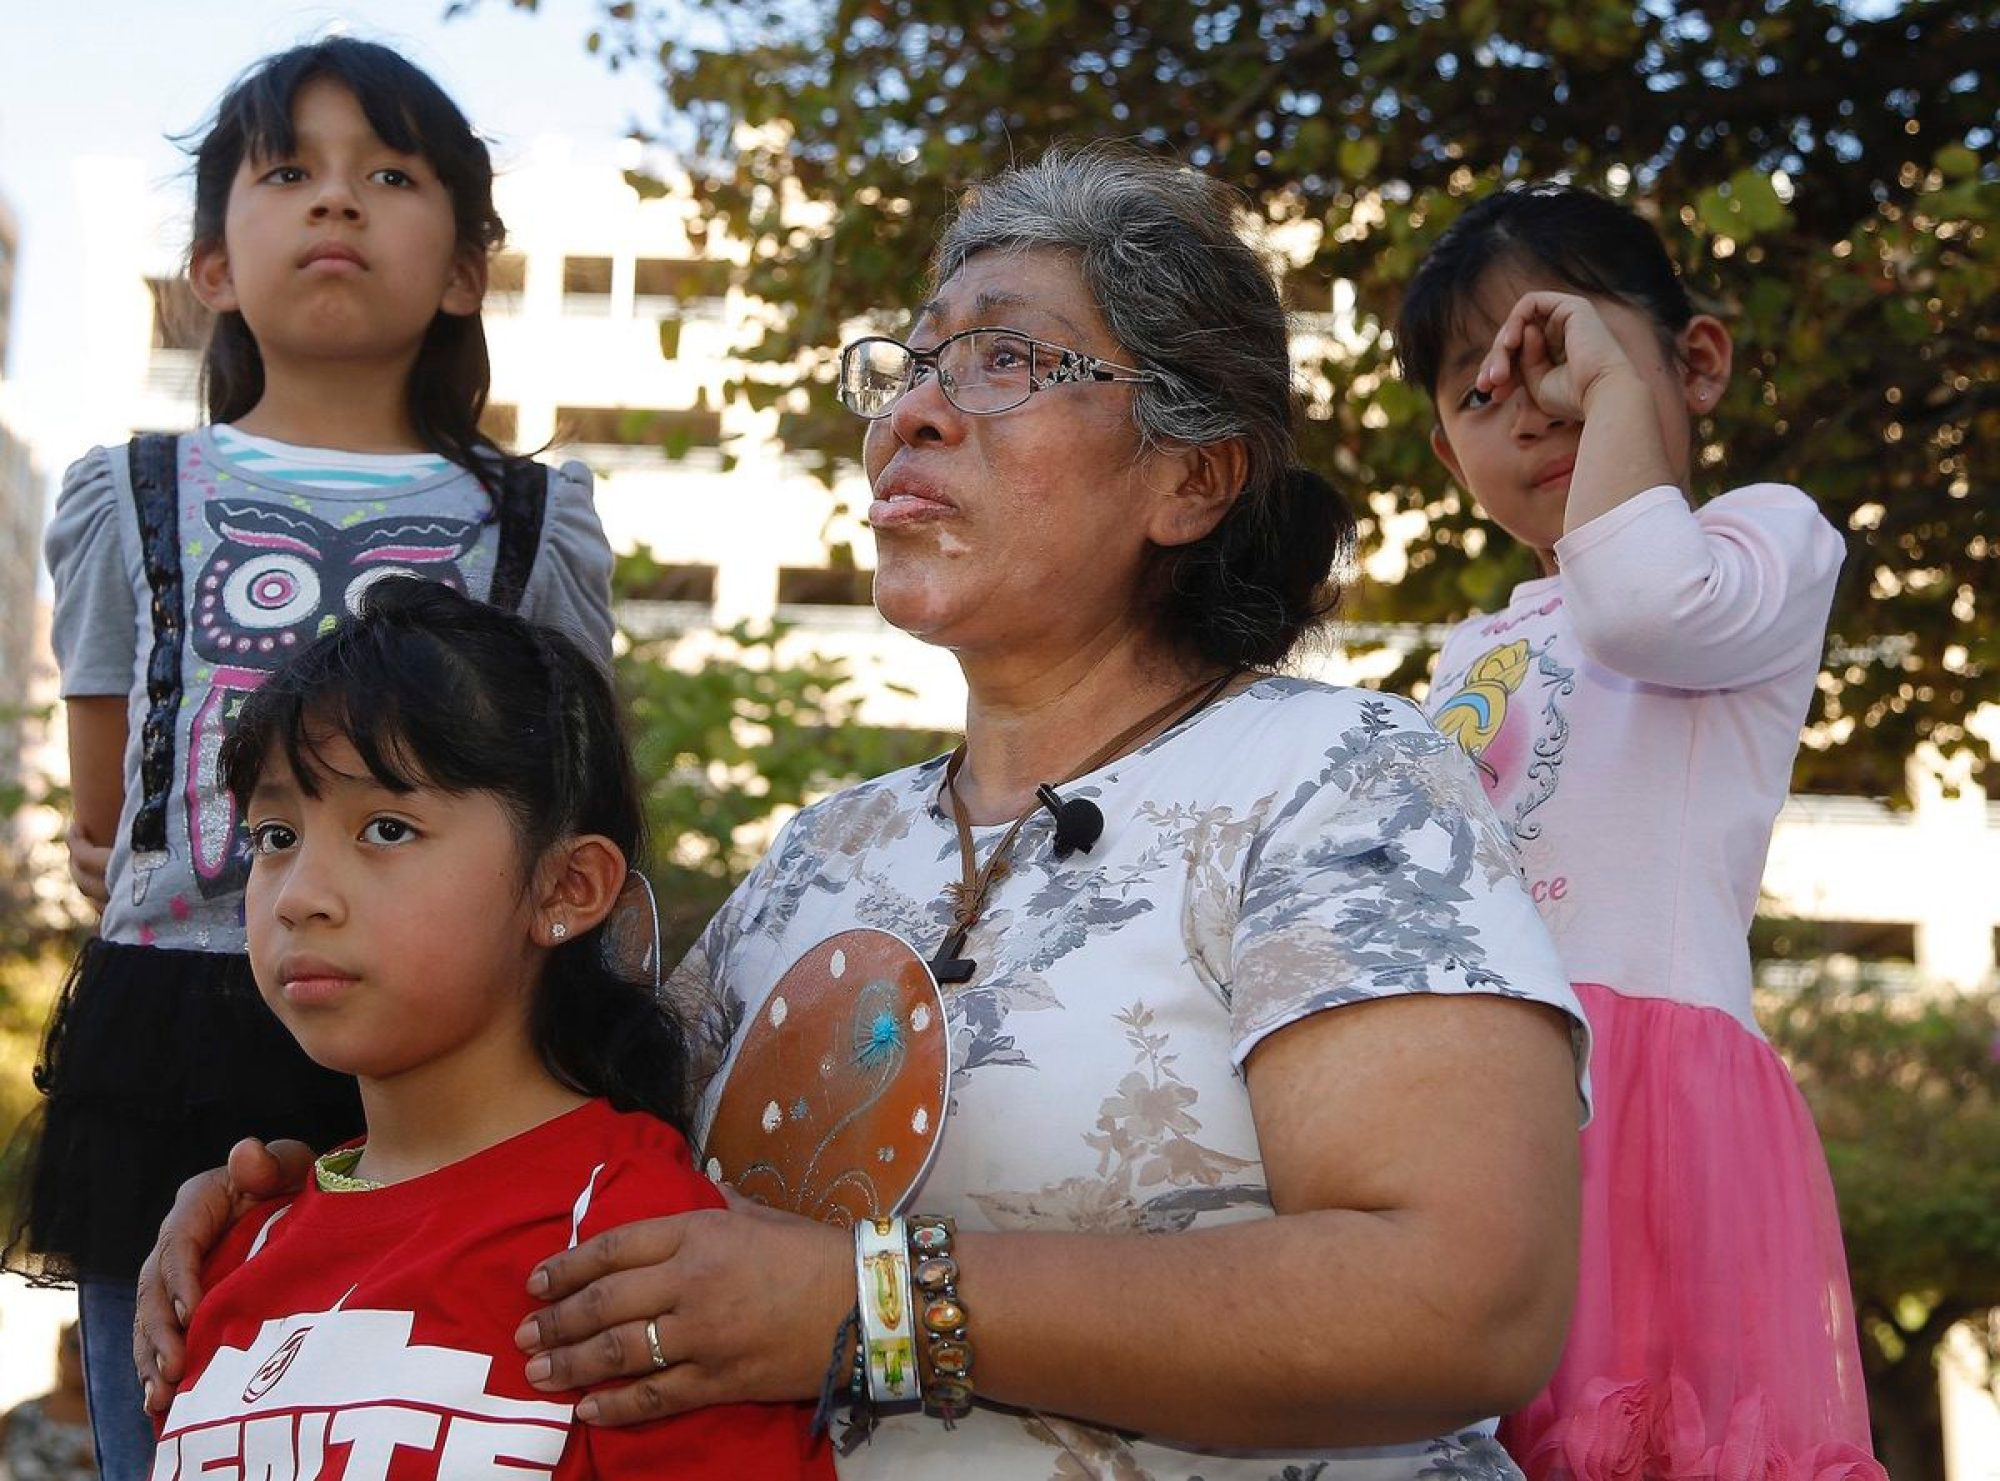 Lucia Ajas, middle, talks about her and her children, Regina Vargas, 7, left, Akemi Vargas, 8, second from left, and Trinidad Vargas, 5, right, being separated from their father during an immigration family separation protest in front of the Sandra Day O'Connor U.S. District Court building, Monday, June 18, 2018, in Phoenix. (AP Photo/Ross D. Franklin)